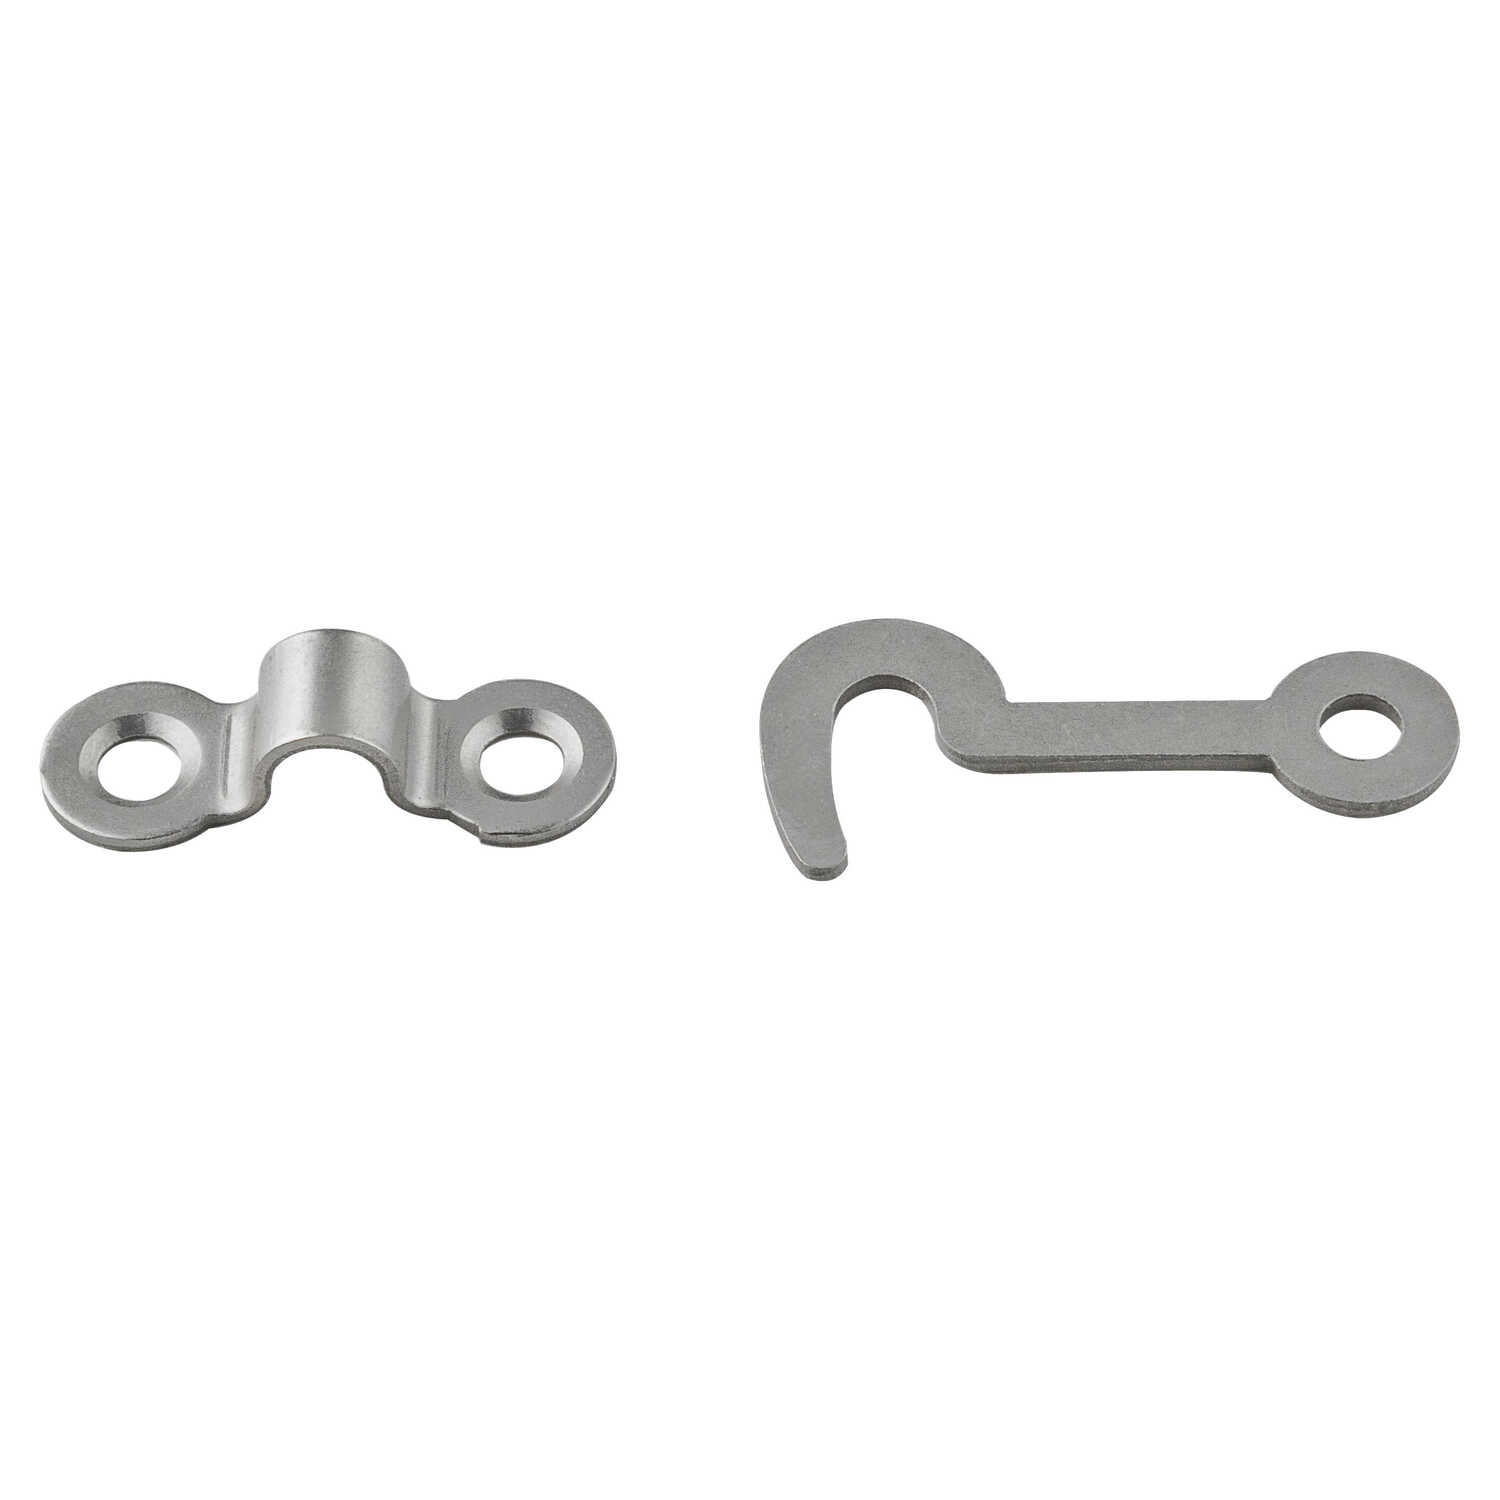 National Hardware  Satin Nickel  Steel  Hook and Staple  2 pk 1-5/16 in.